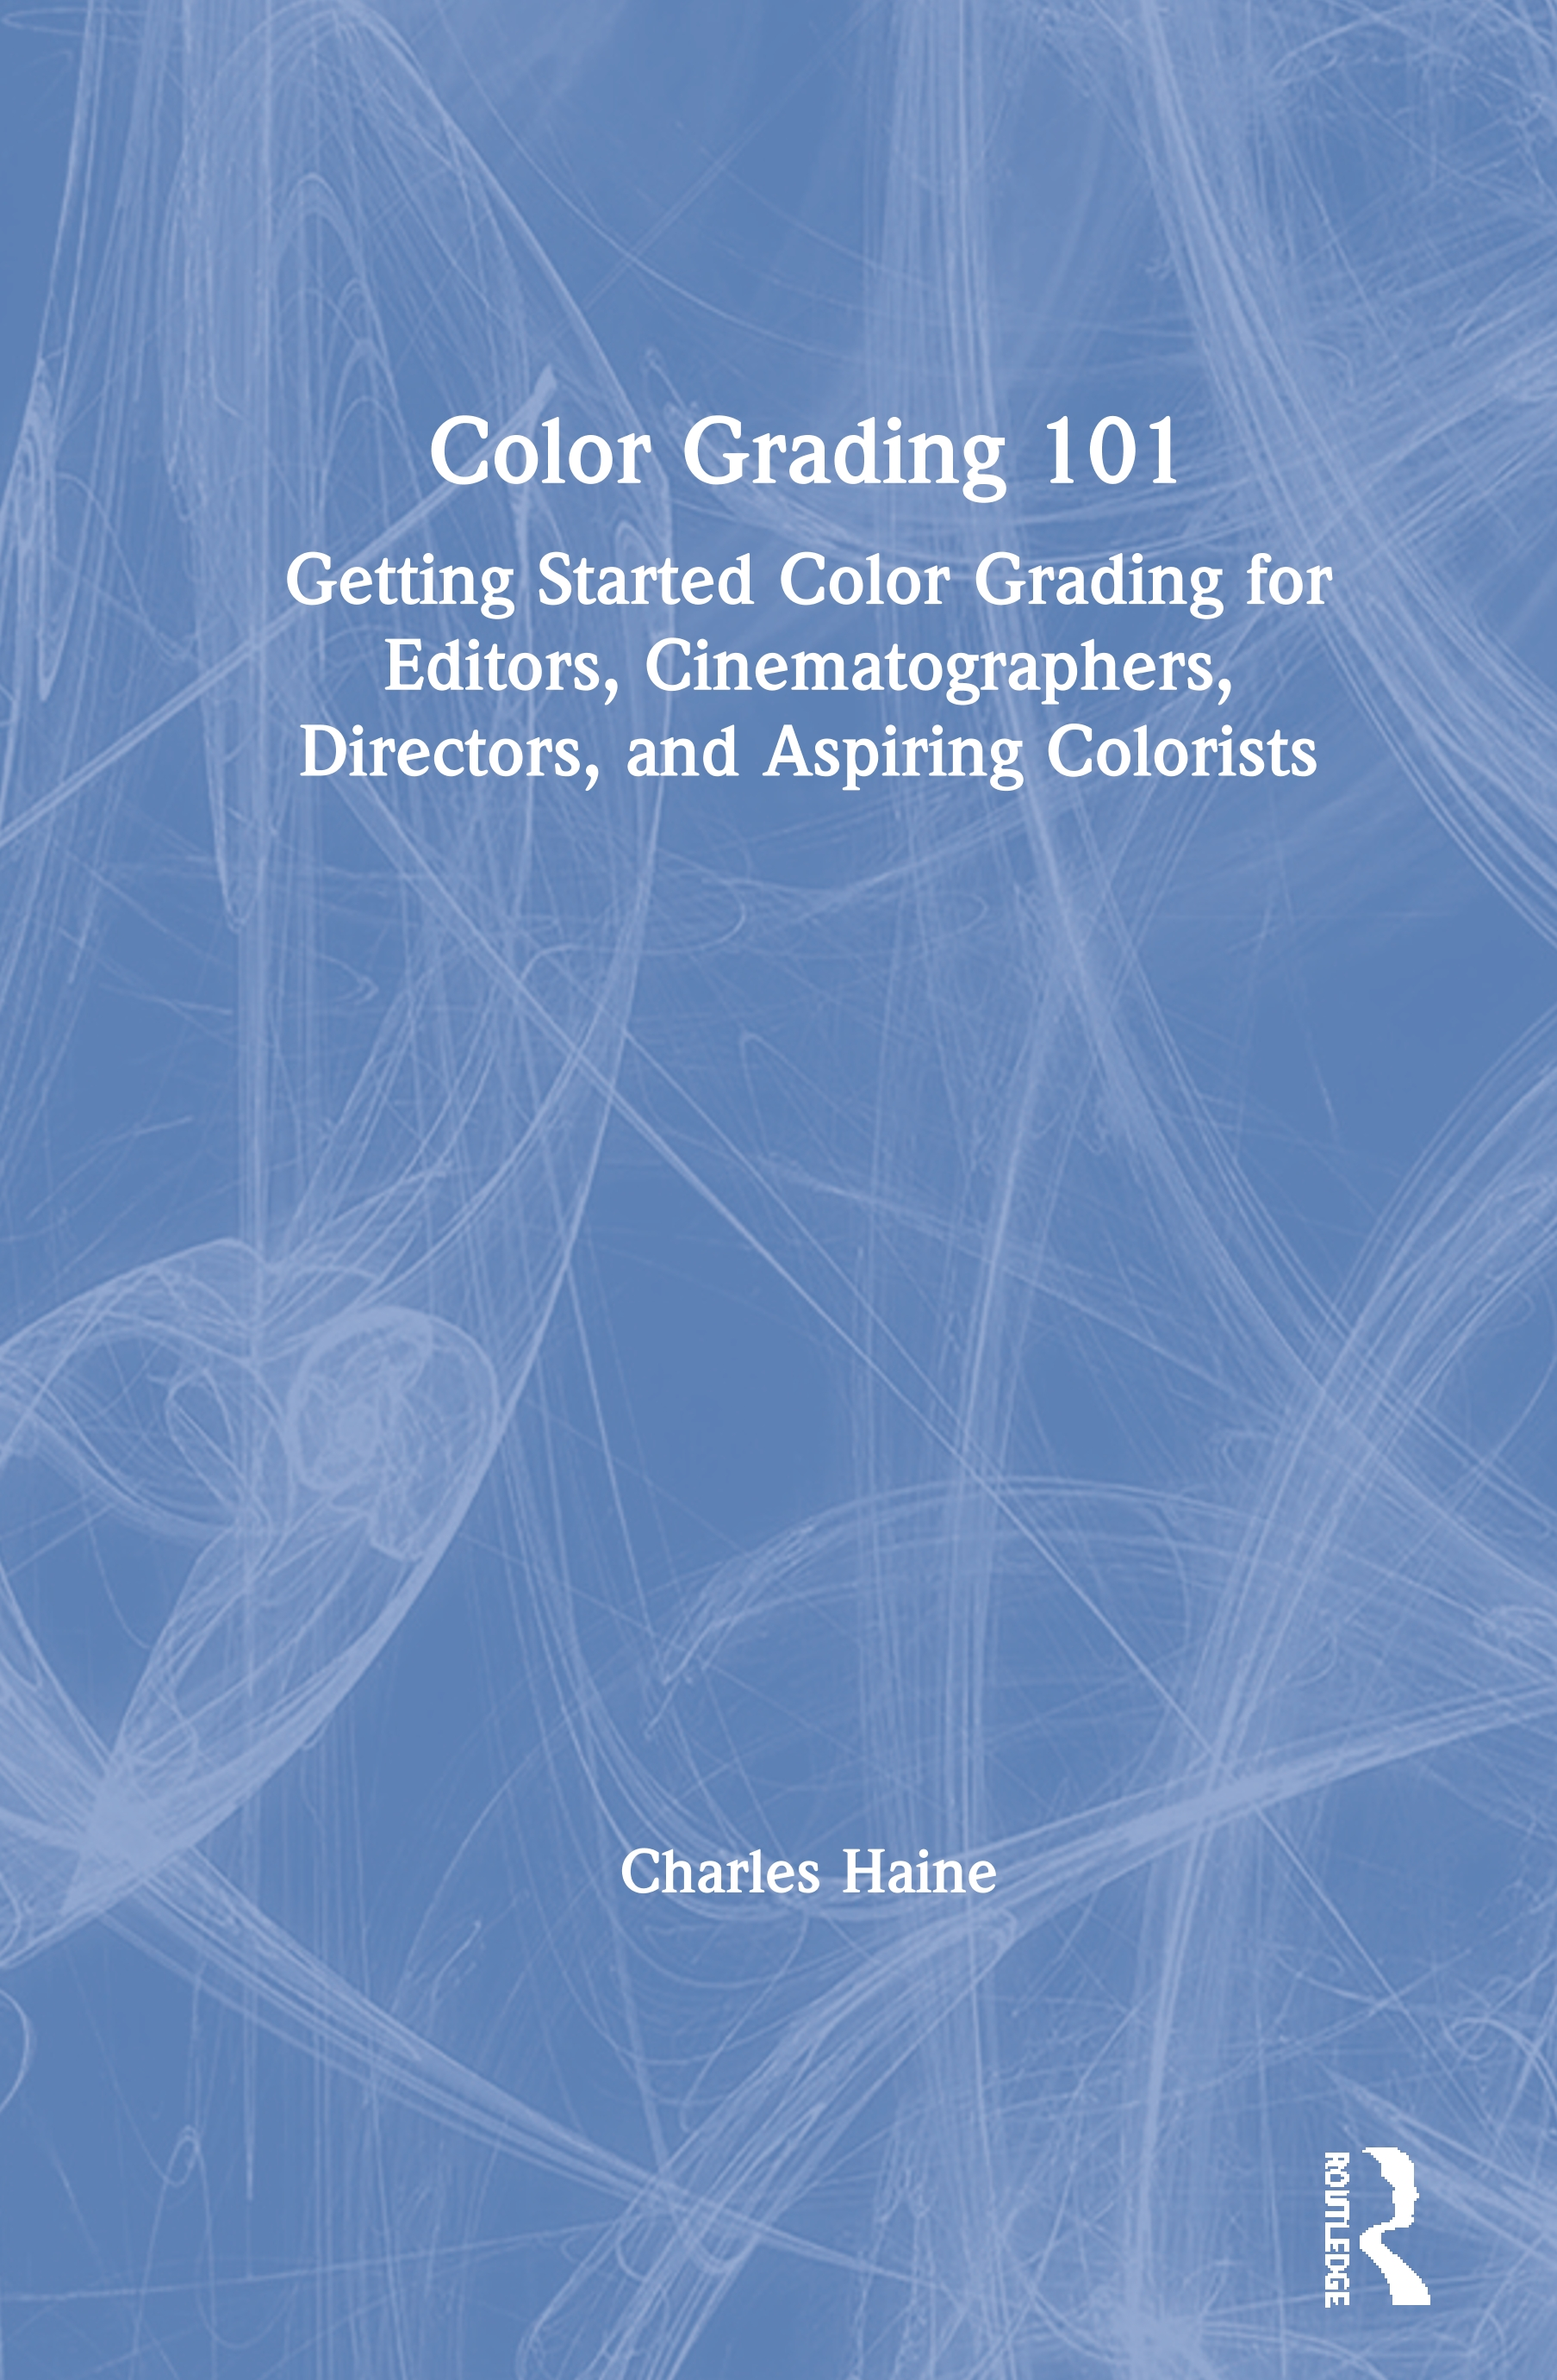 Color Grading 101: Getting Started Color Grading for Editors, Cinematographers, Directors, and Aspiring Colorists book cover